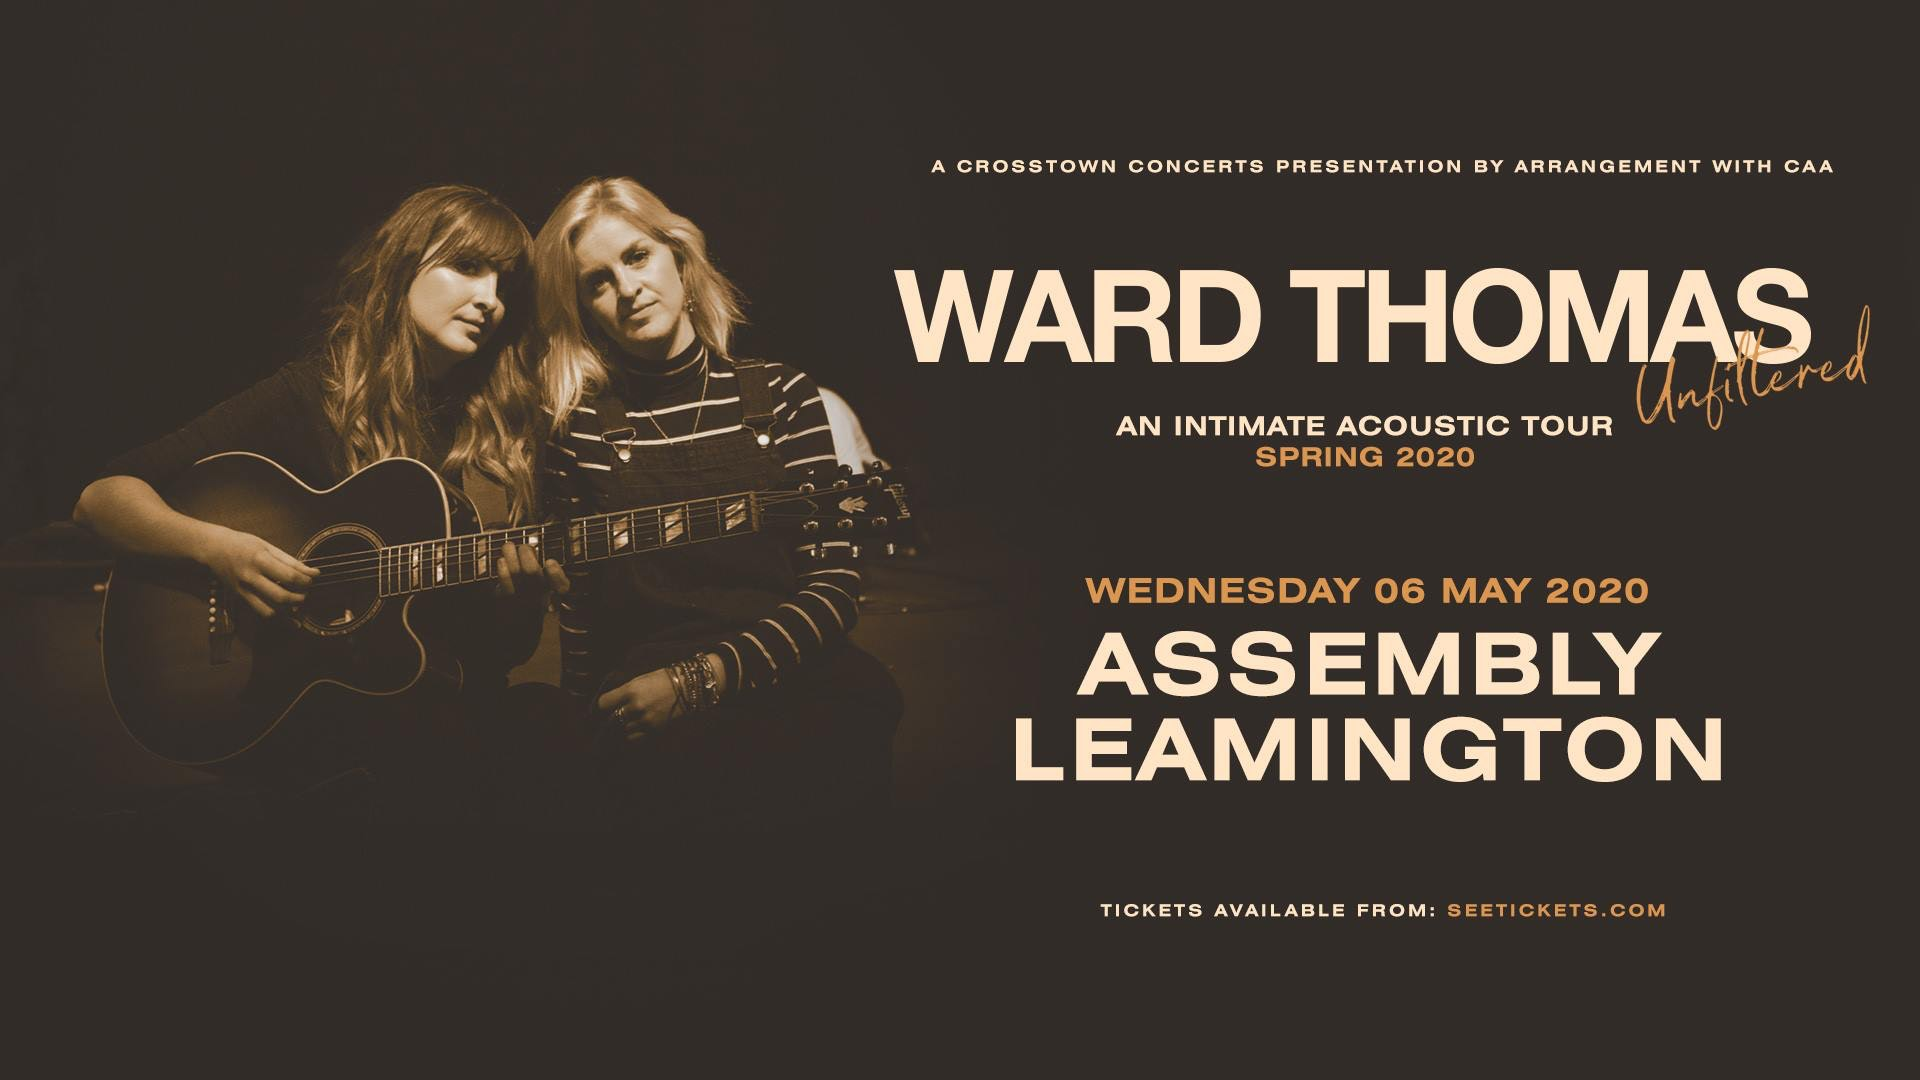 Ward Thomas at The Assembly, Leamington Spa